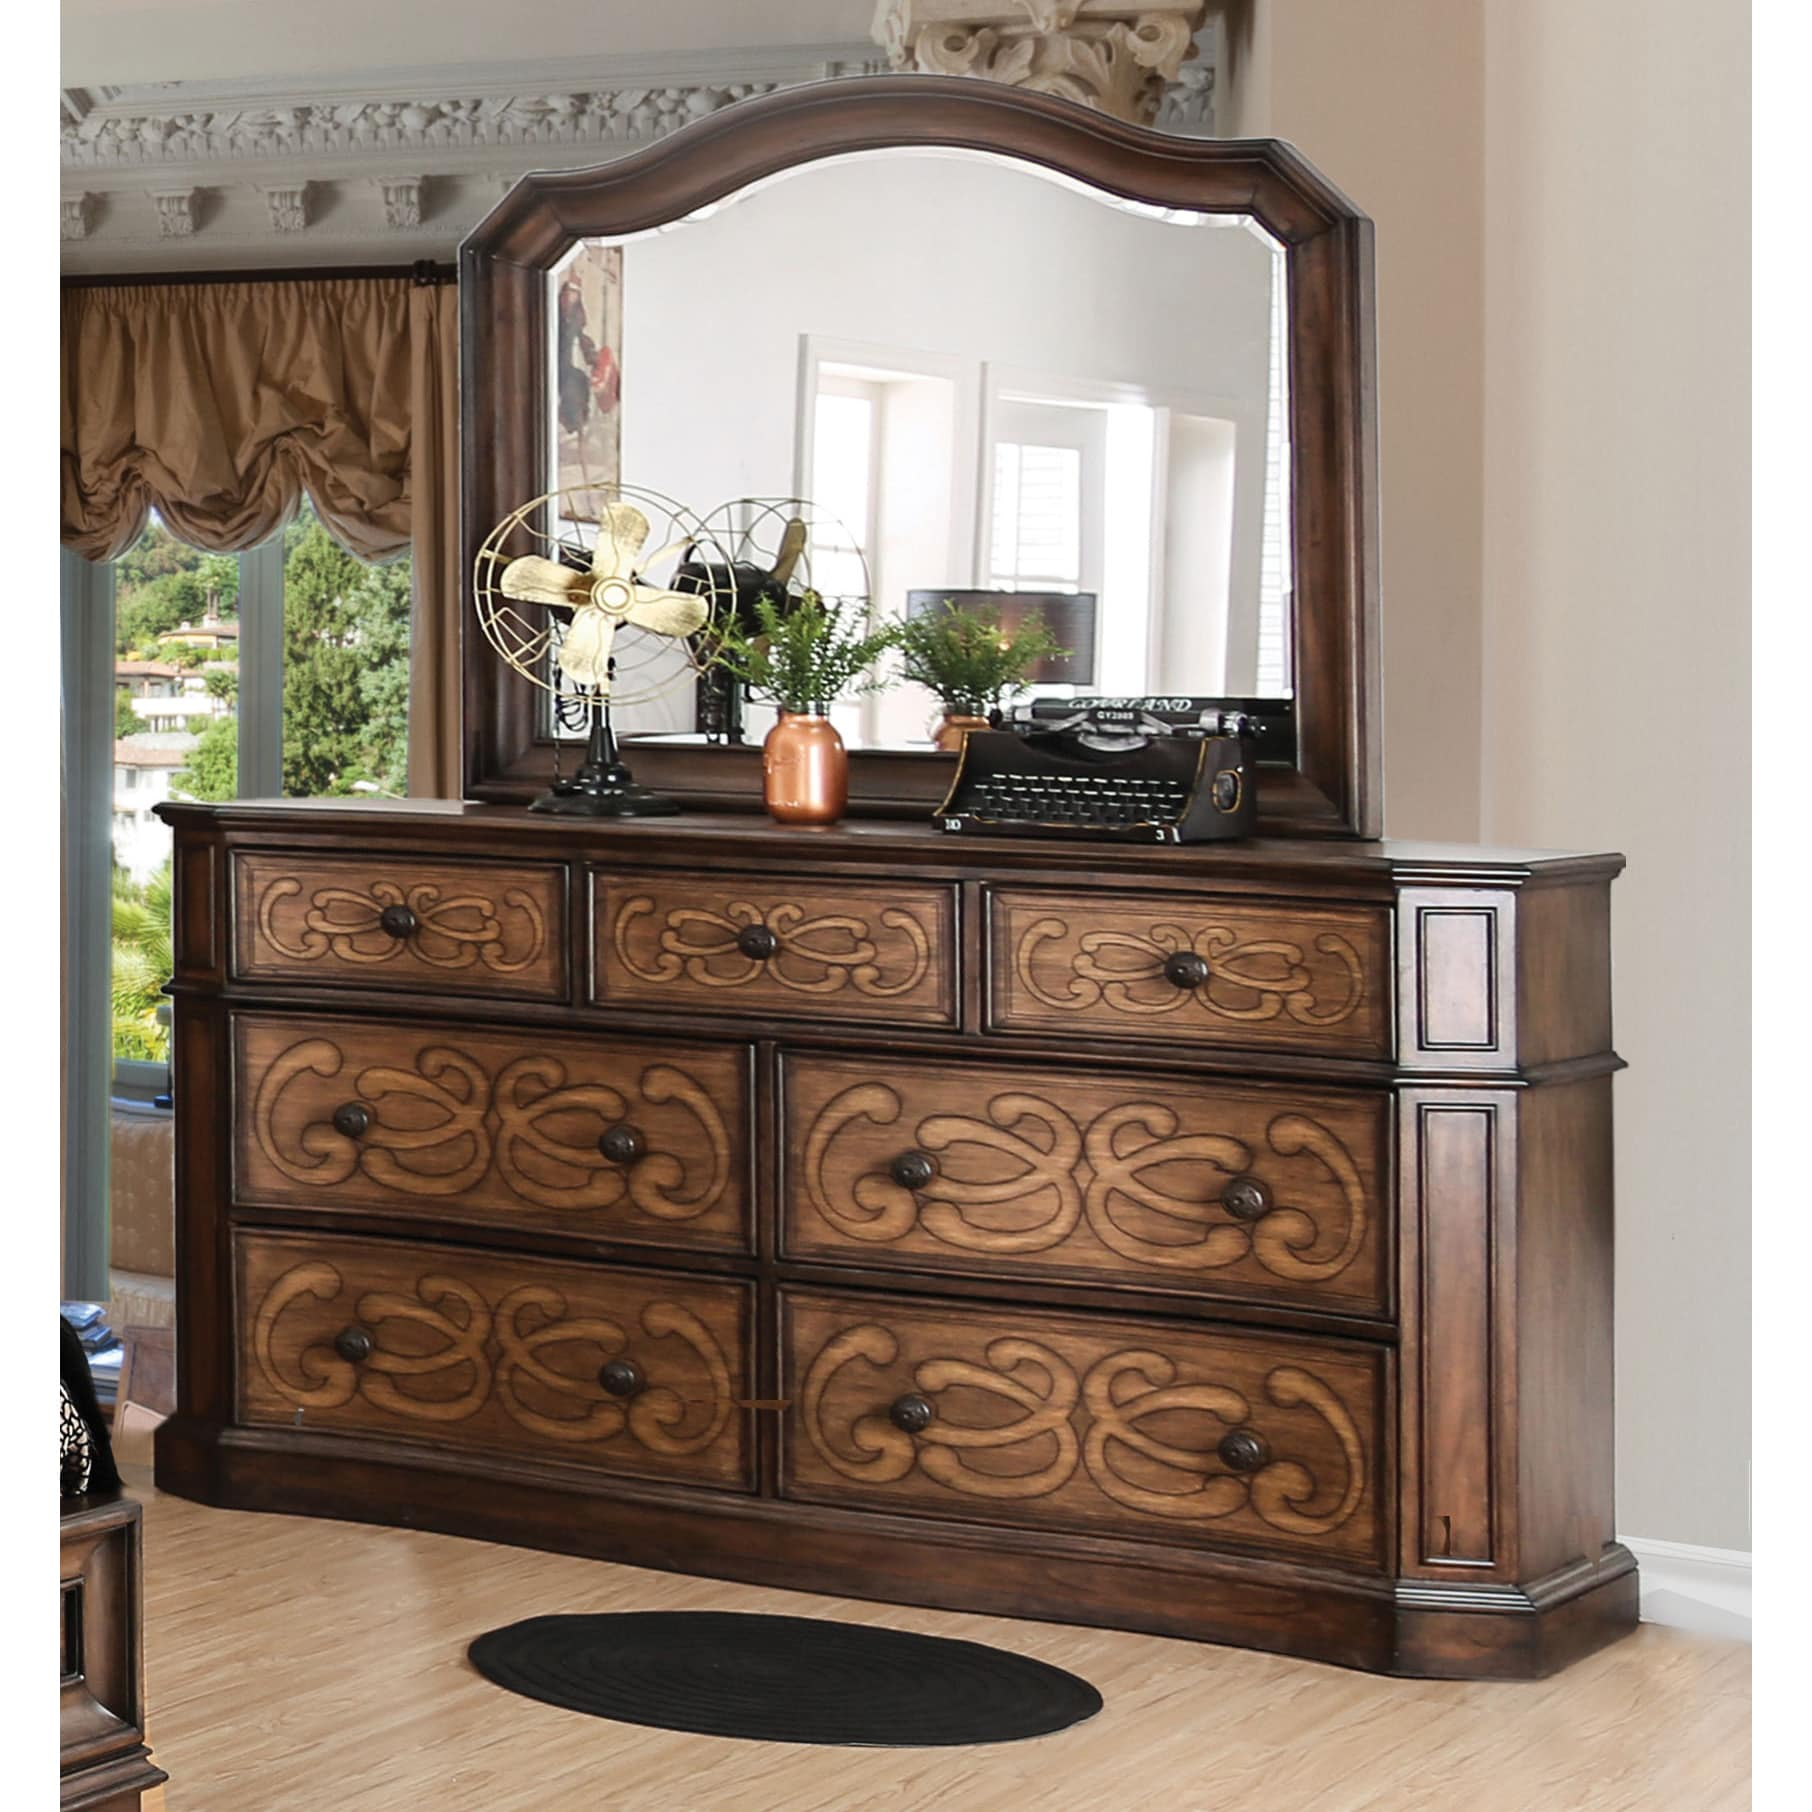 Furniture of America  Palms Wooden 2-piece Laser Cut Warm Chestnut Dresser and Mirror Set